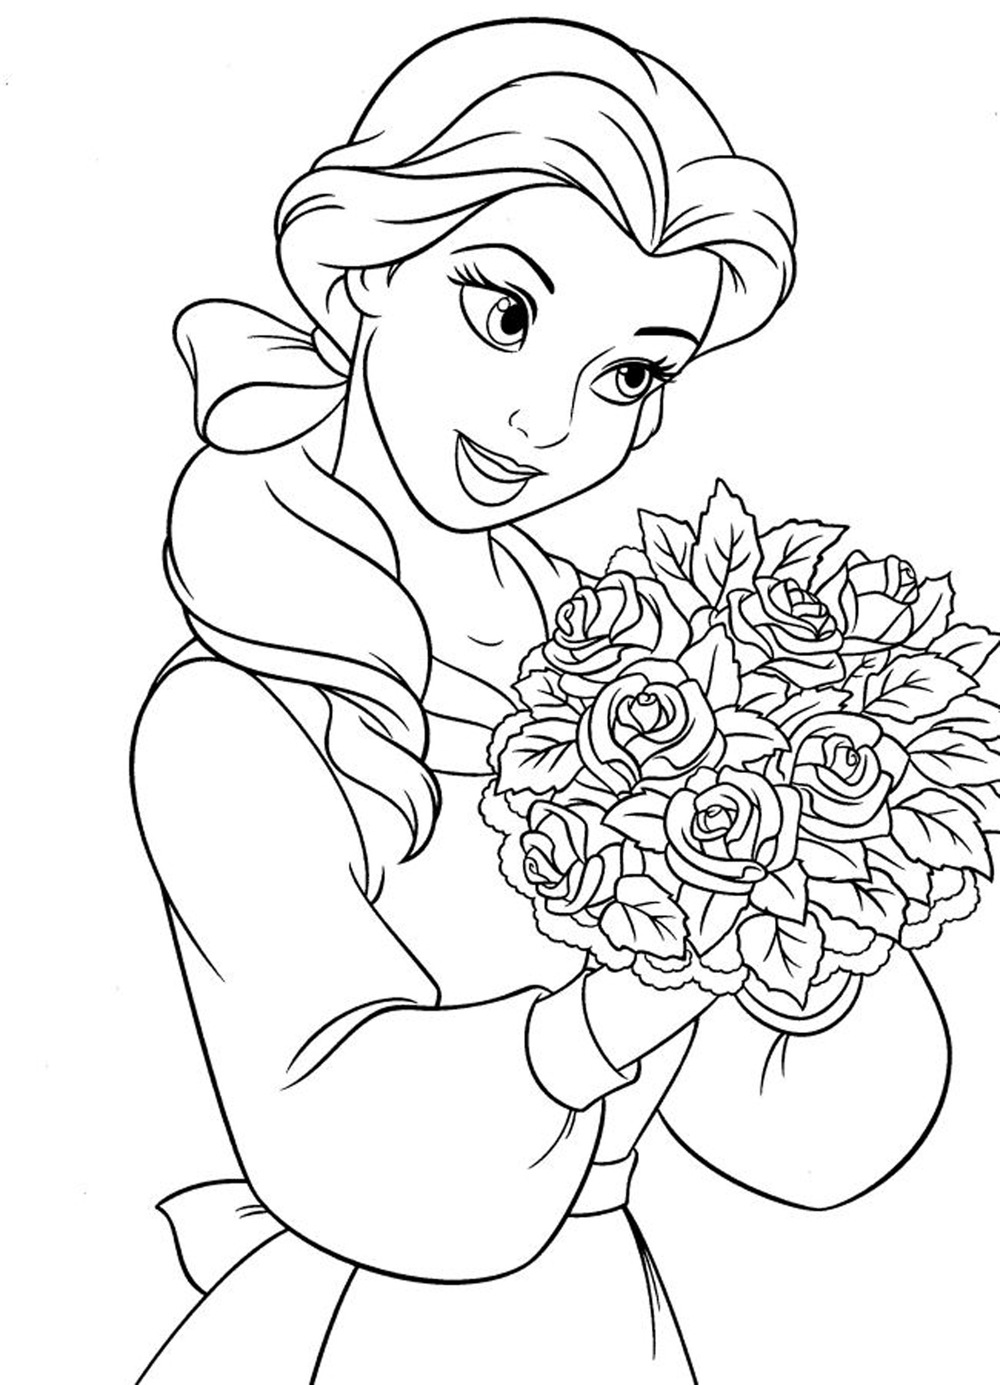 Disney Princess Printable Coloring Page